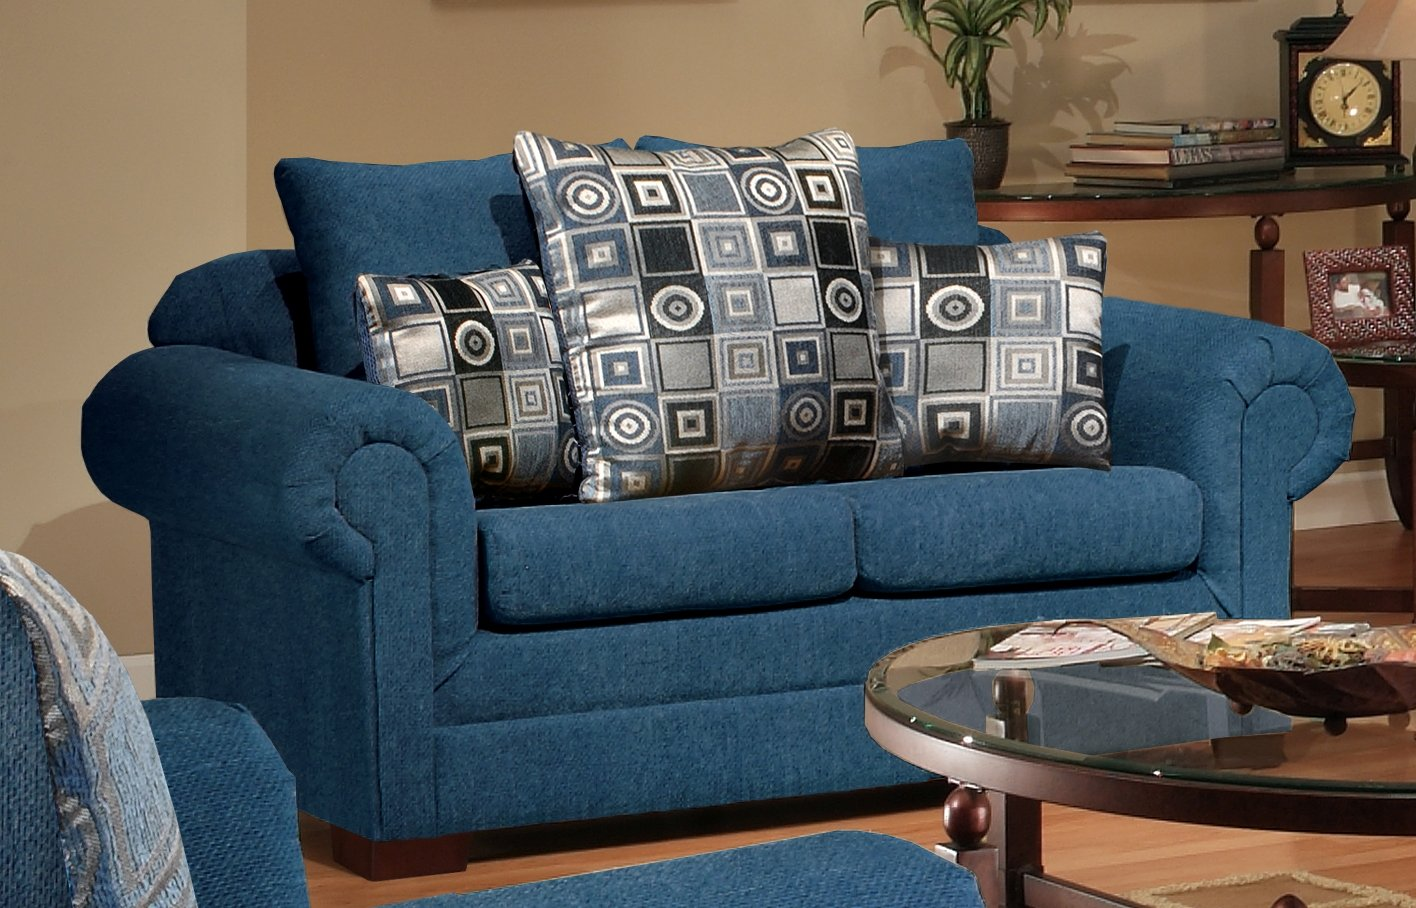 Chelsea Home Furniture Marsha Loveseat - Upholstered in Tahoe Navy/Boomerang Navy